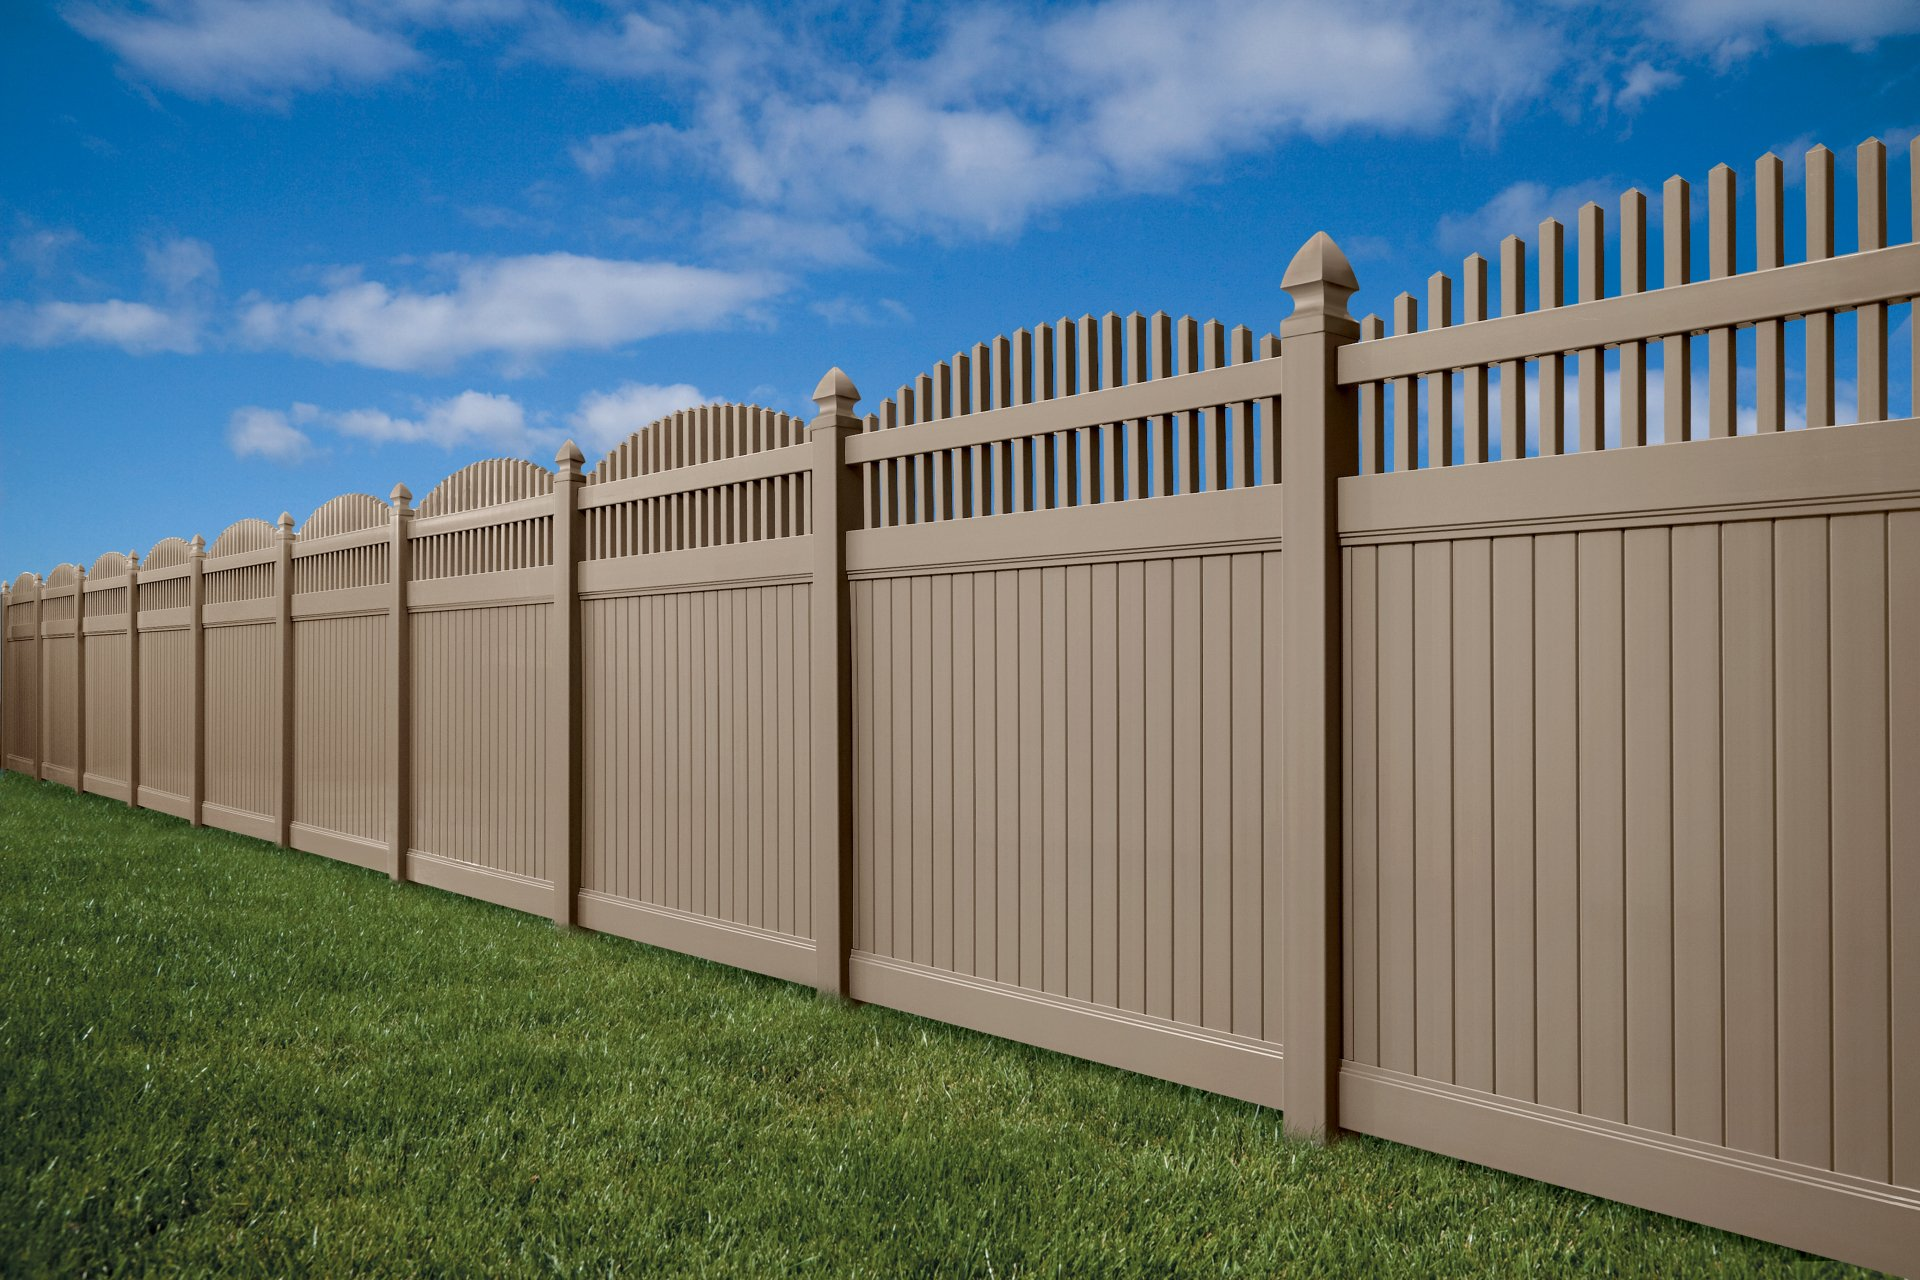 Commercial Fence Supplier Kennels Buuldings Security